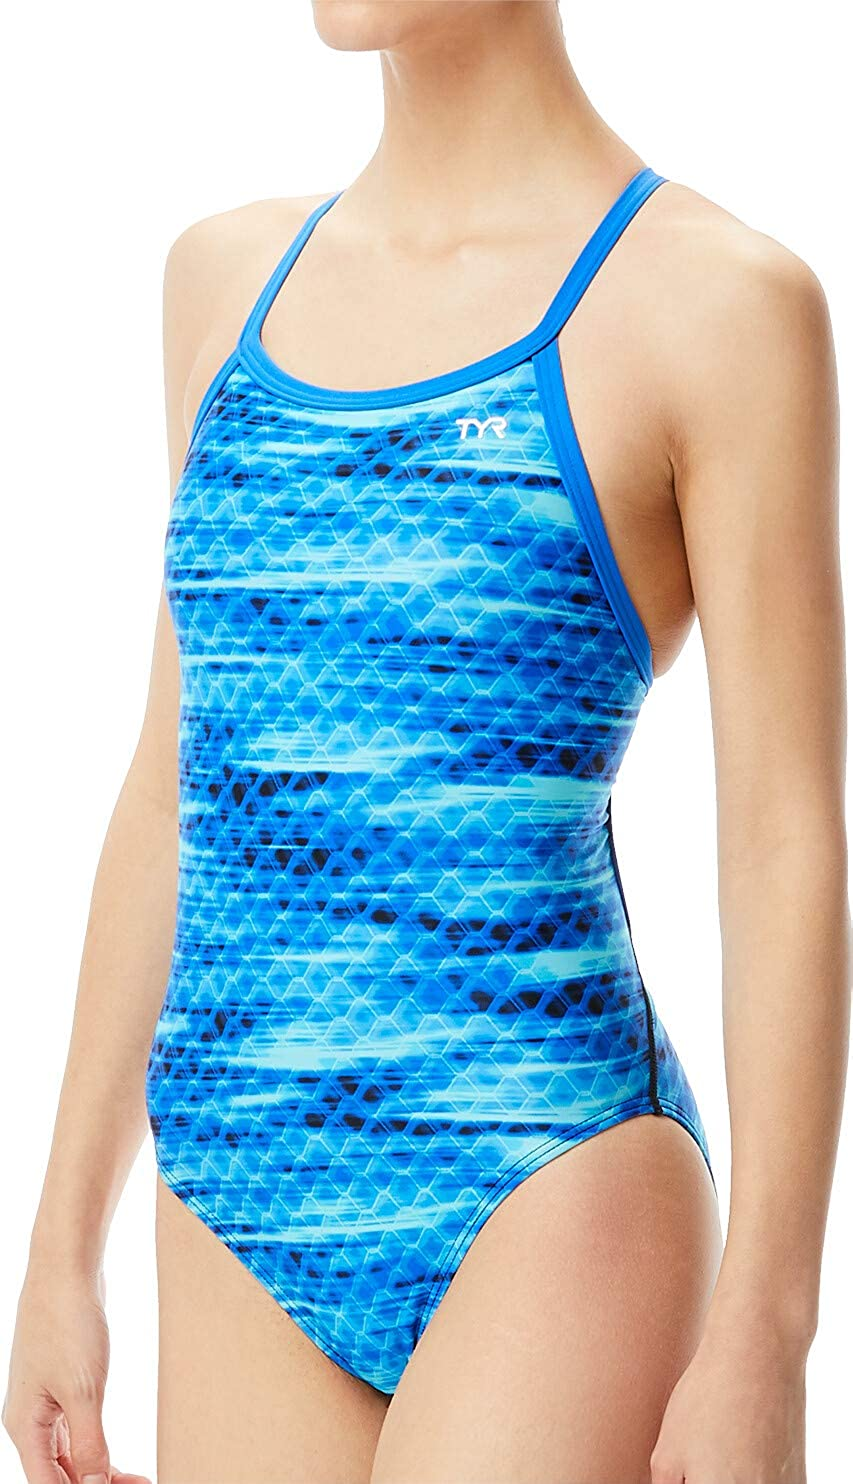 TYR womens Product Diamondfit Castaway Ranking integrated 1st place